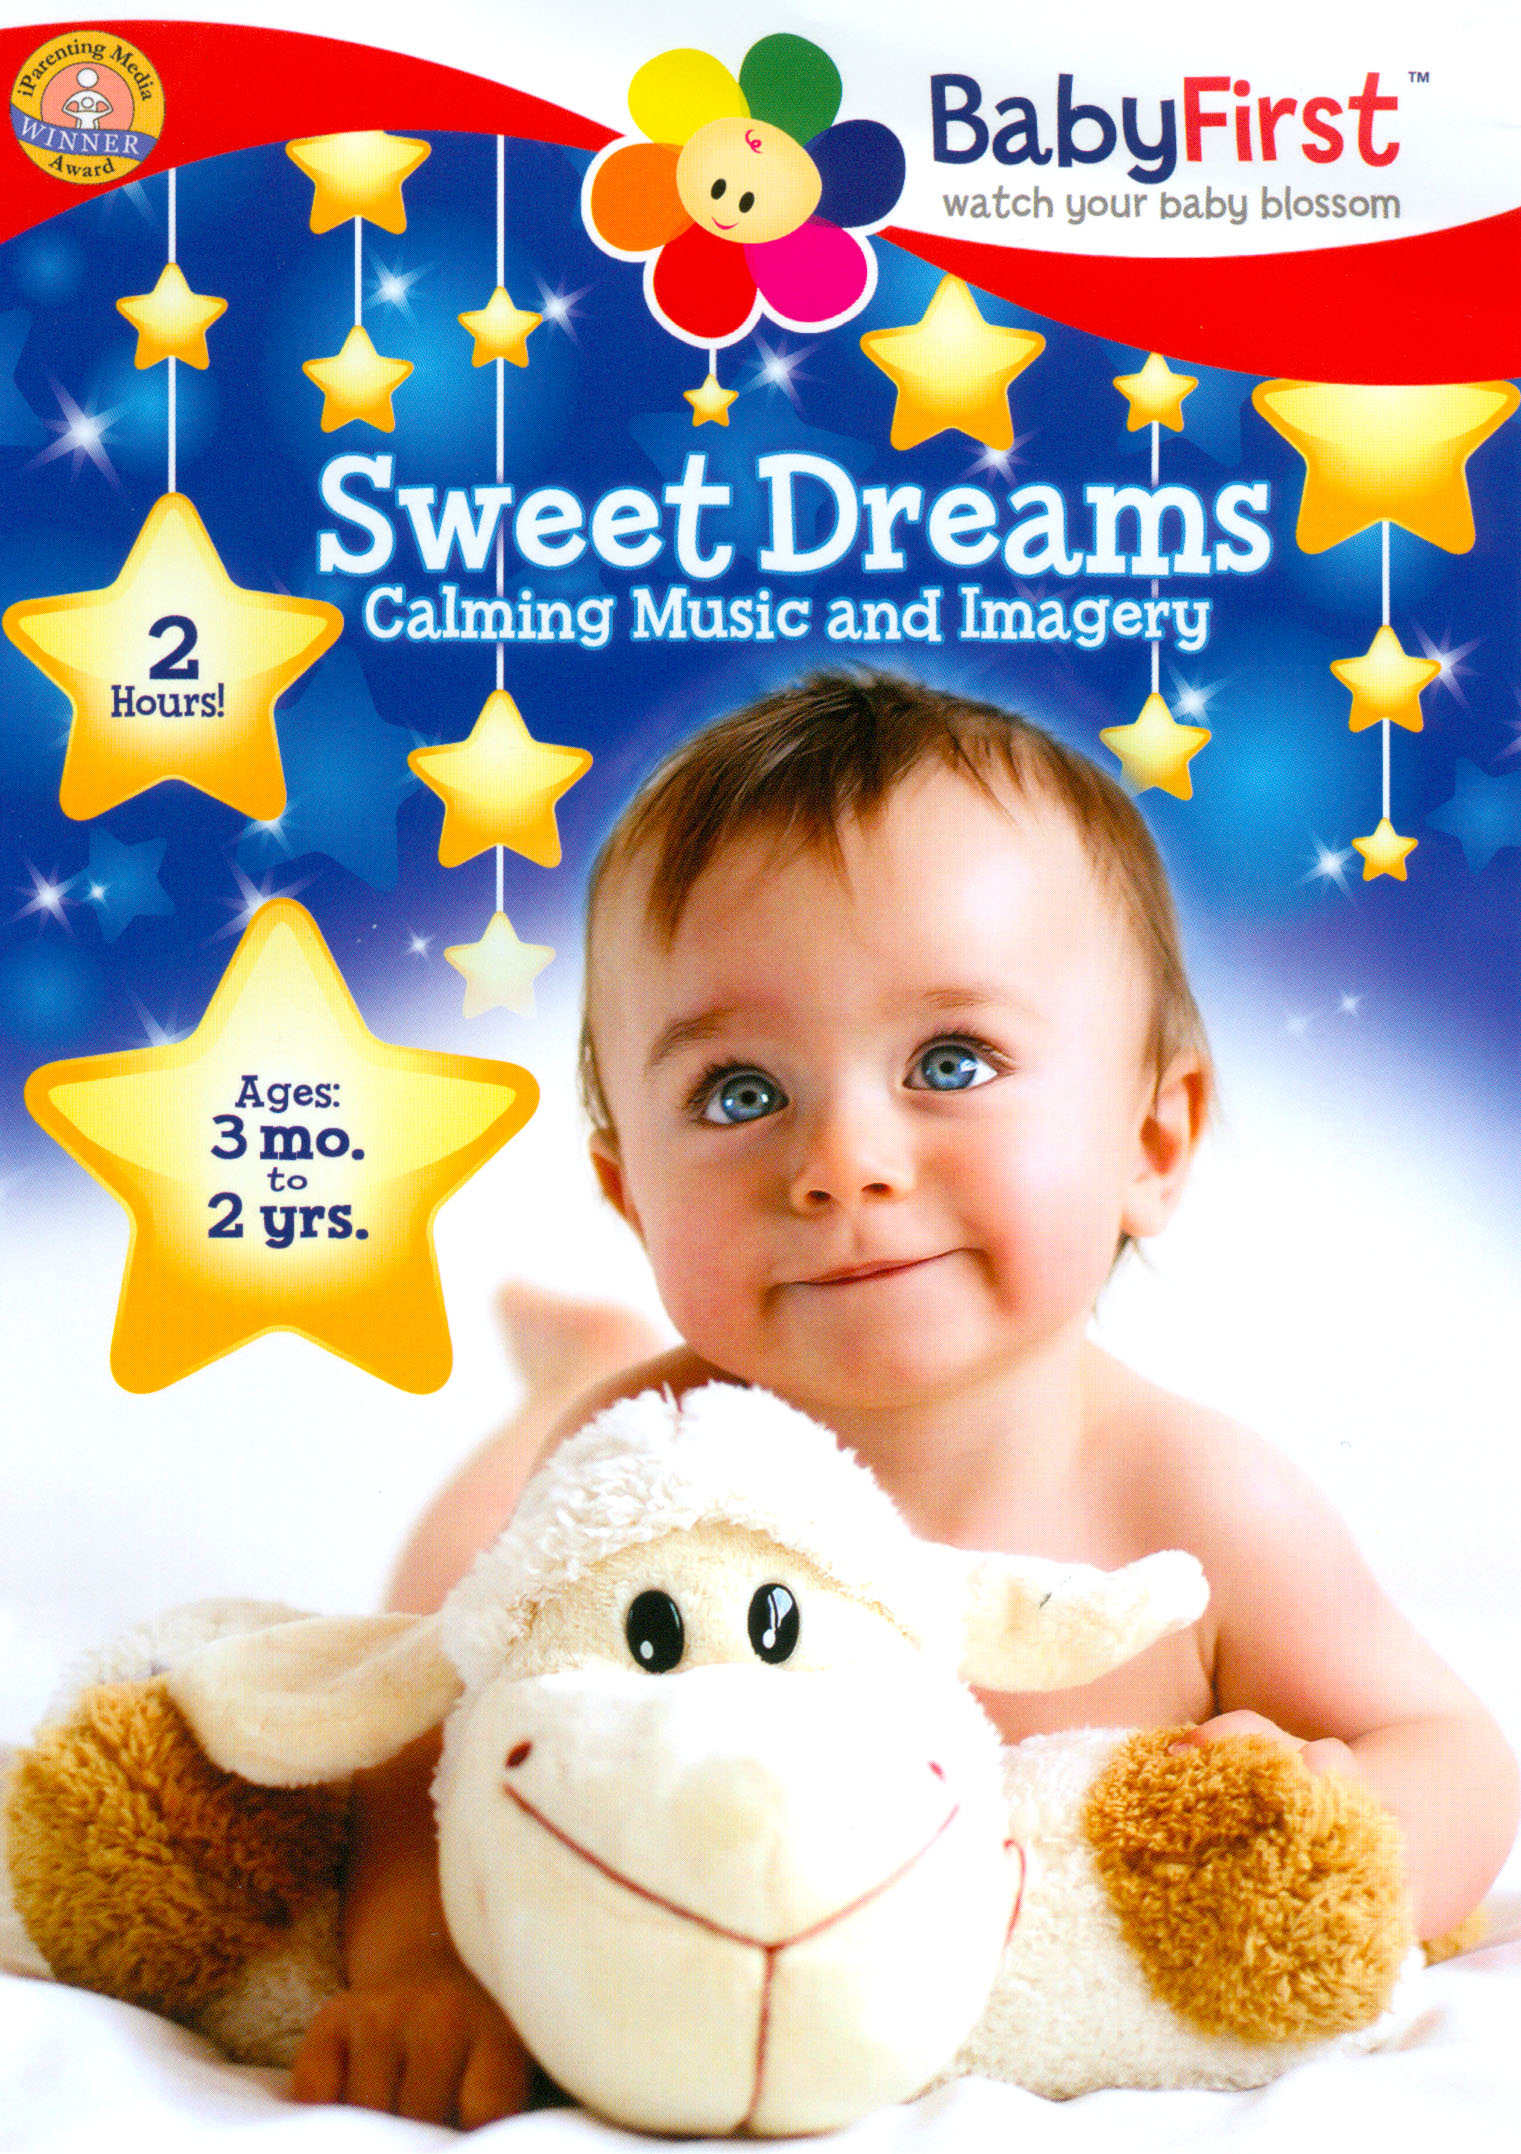 BabyFirst: Sweet Dreams - Calming Music & Imagery